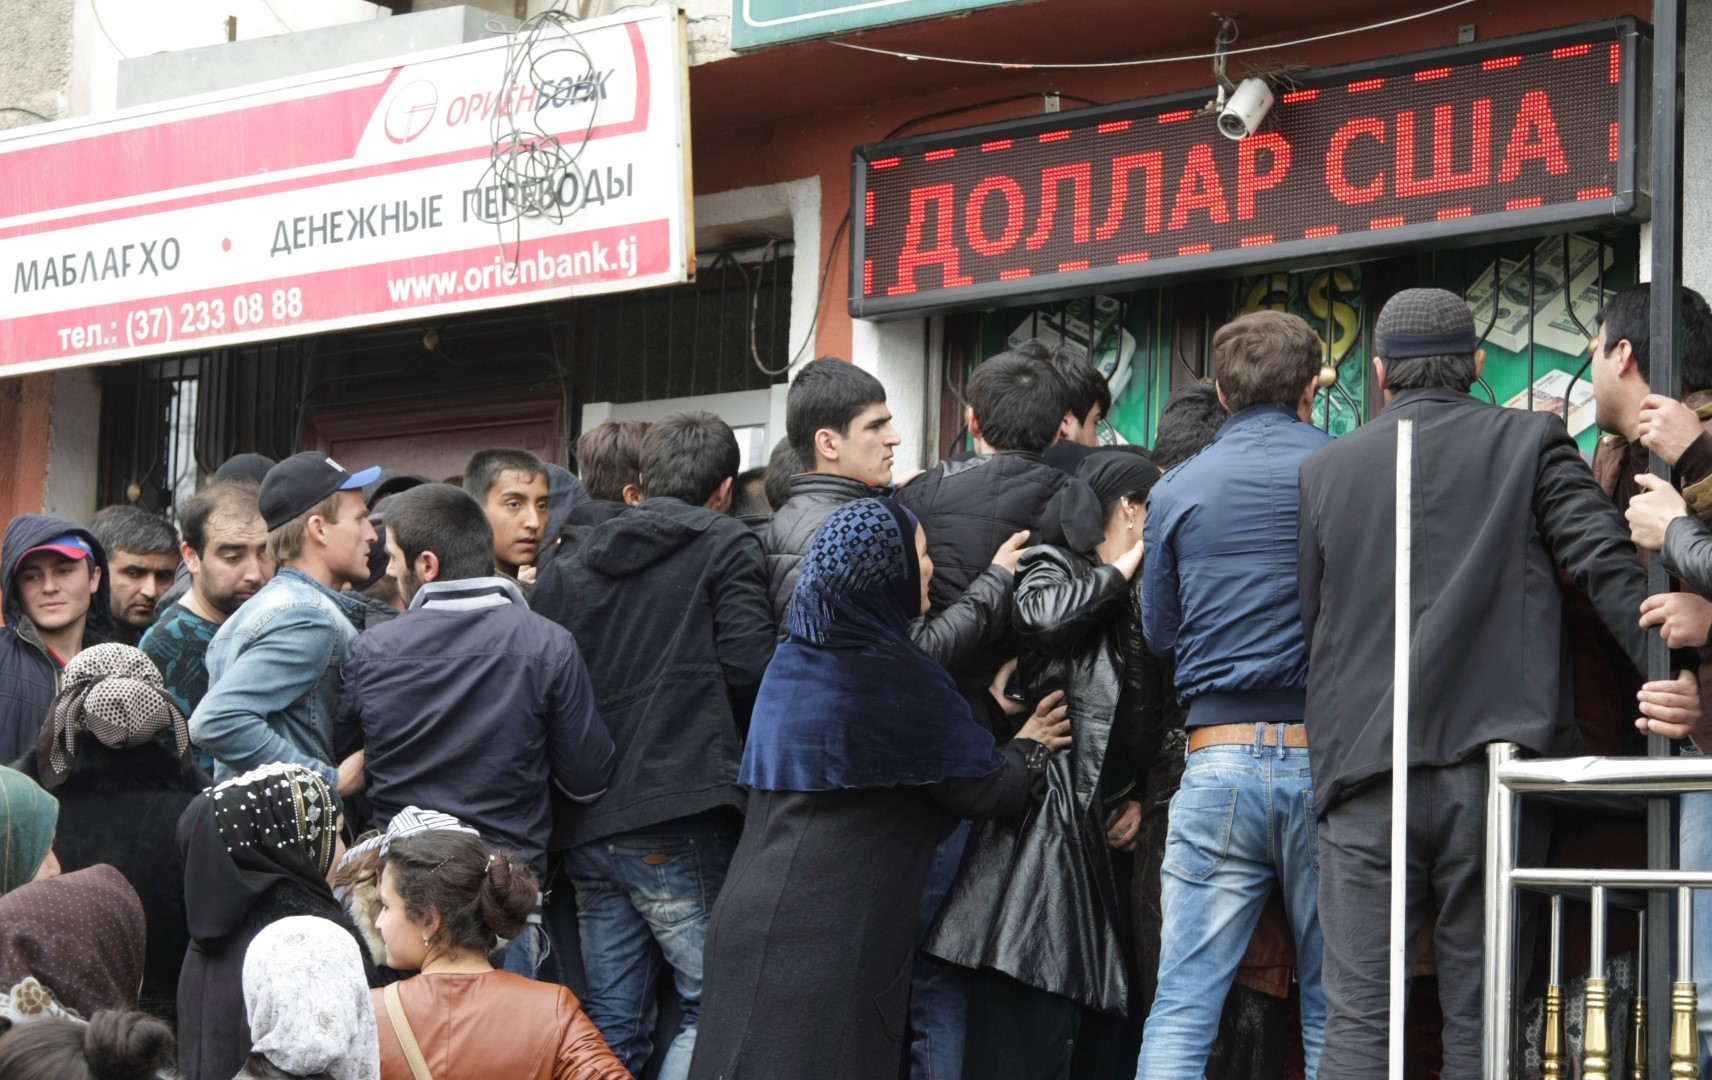 People gather near a currency exchange office in Dushanbe March 9, 2015. During the last week the average exchange rate of the U.S. dollar in the republic's exchange offices, rose and averaged 5.9930 - 6.0110 Tajikistan somoni, the National Bank of Tajikistan reported. In previous days, the average rates of exchange with the Russian rouble and the Euro also rose slightly and made 0,0960-0,0970 Somoni for one Russian rouble and 6.5990 - 6.6210 Somoni for one euro. REUTERS/Nozim Kalandarov (TAJIKISTAN  - Tags: BUSINESS) - GM1EB391GBZ01